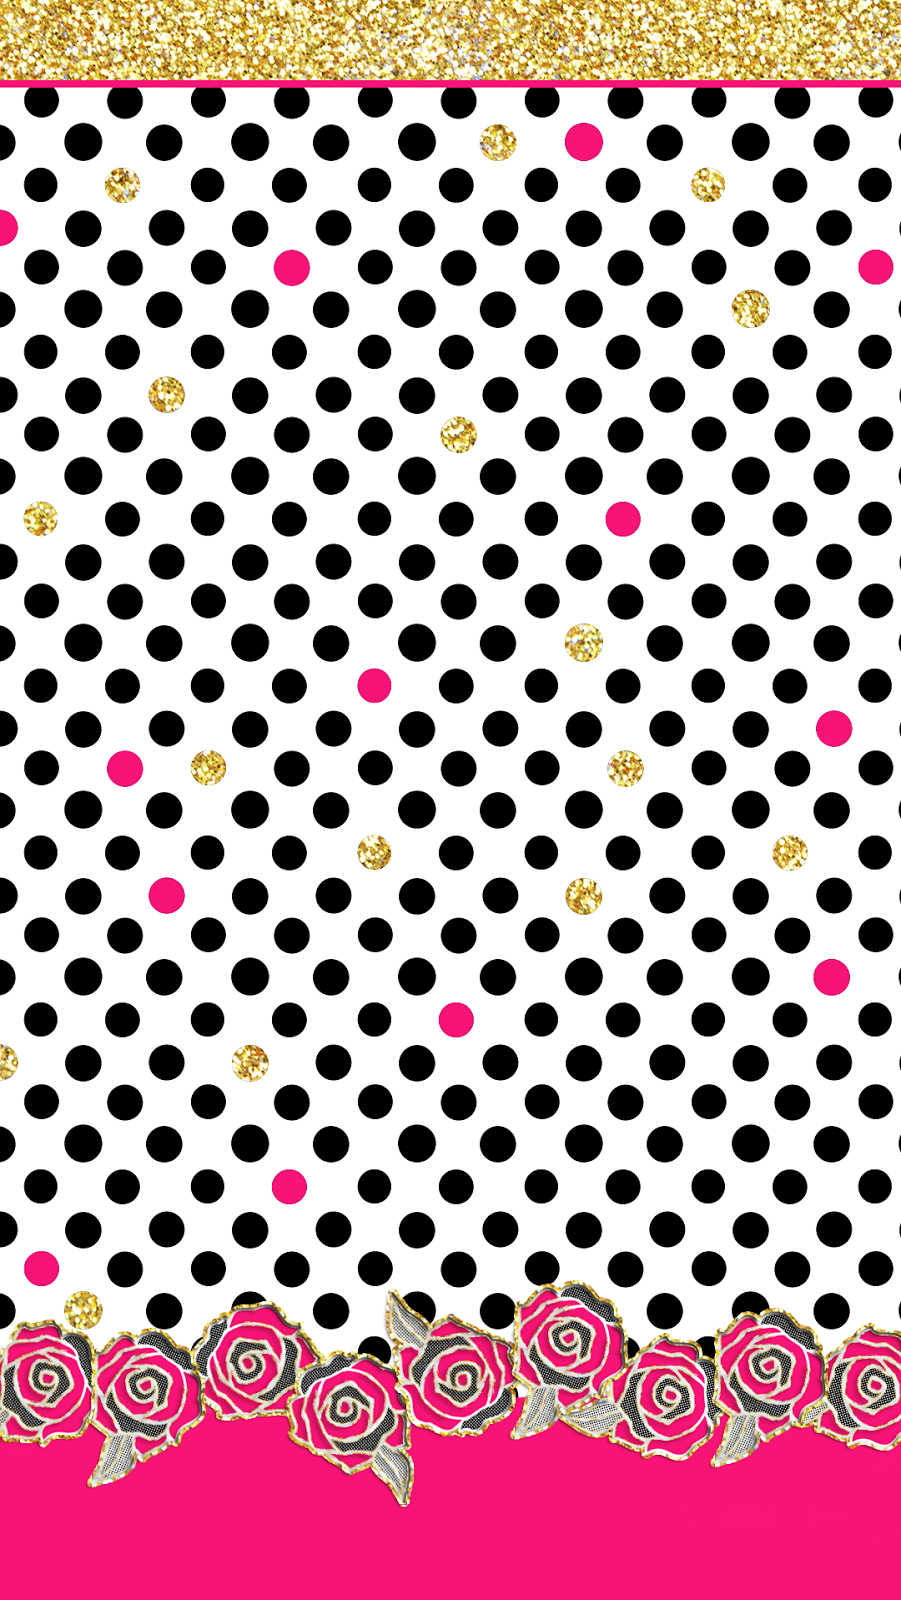 Good Wallpaper Hello Kitty Gray - Risspected-Kate-Spade-Hello-Kitty-Phone-wallpaper-wp5607932  Perfect Image Reference_852915.png